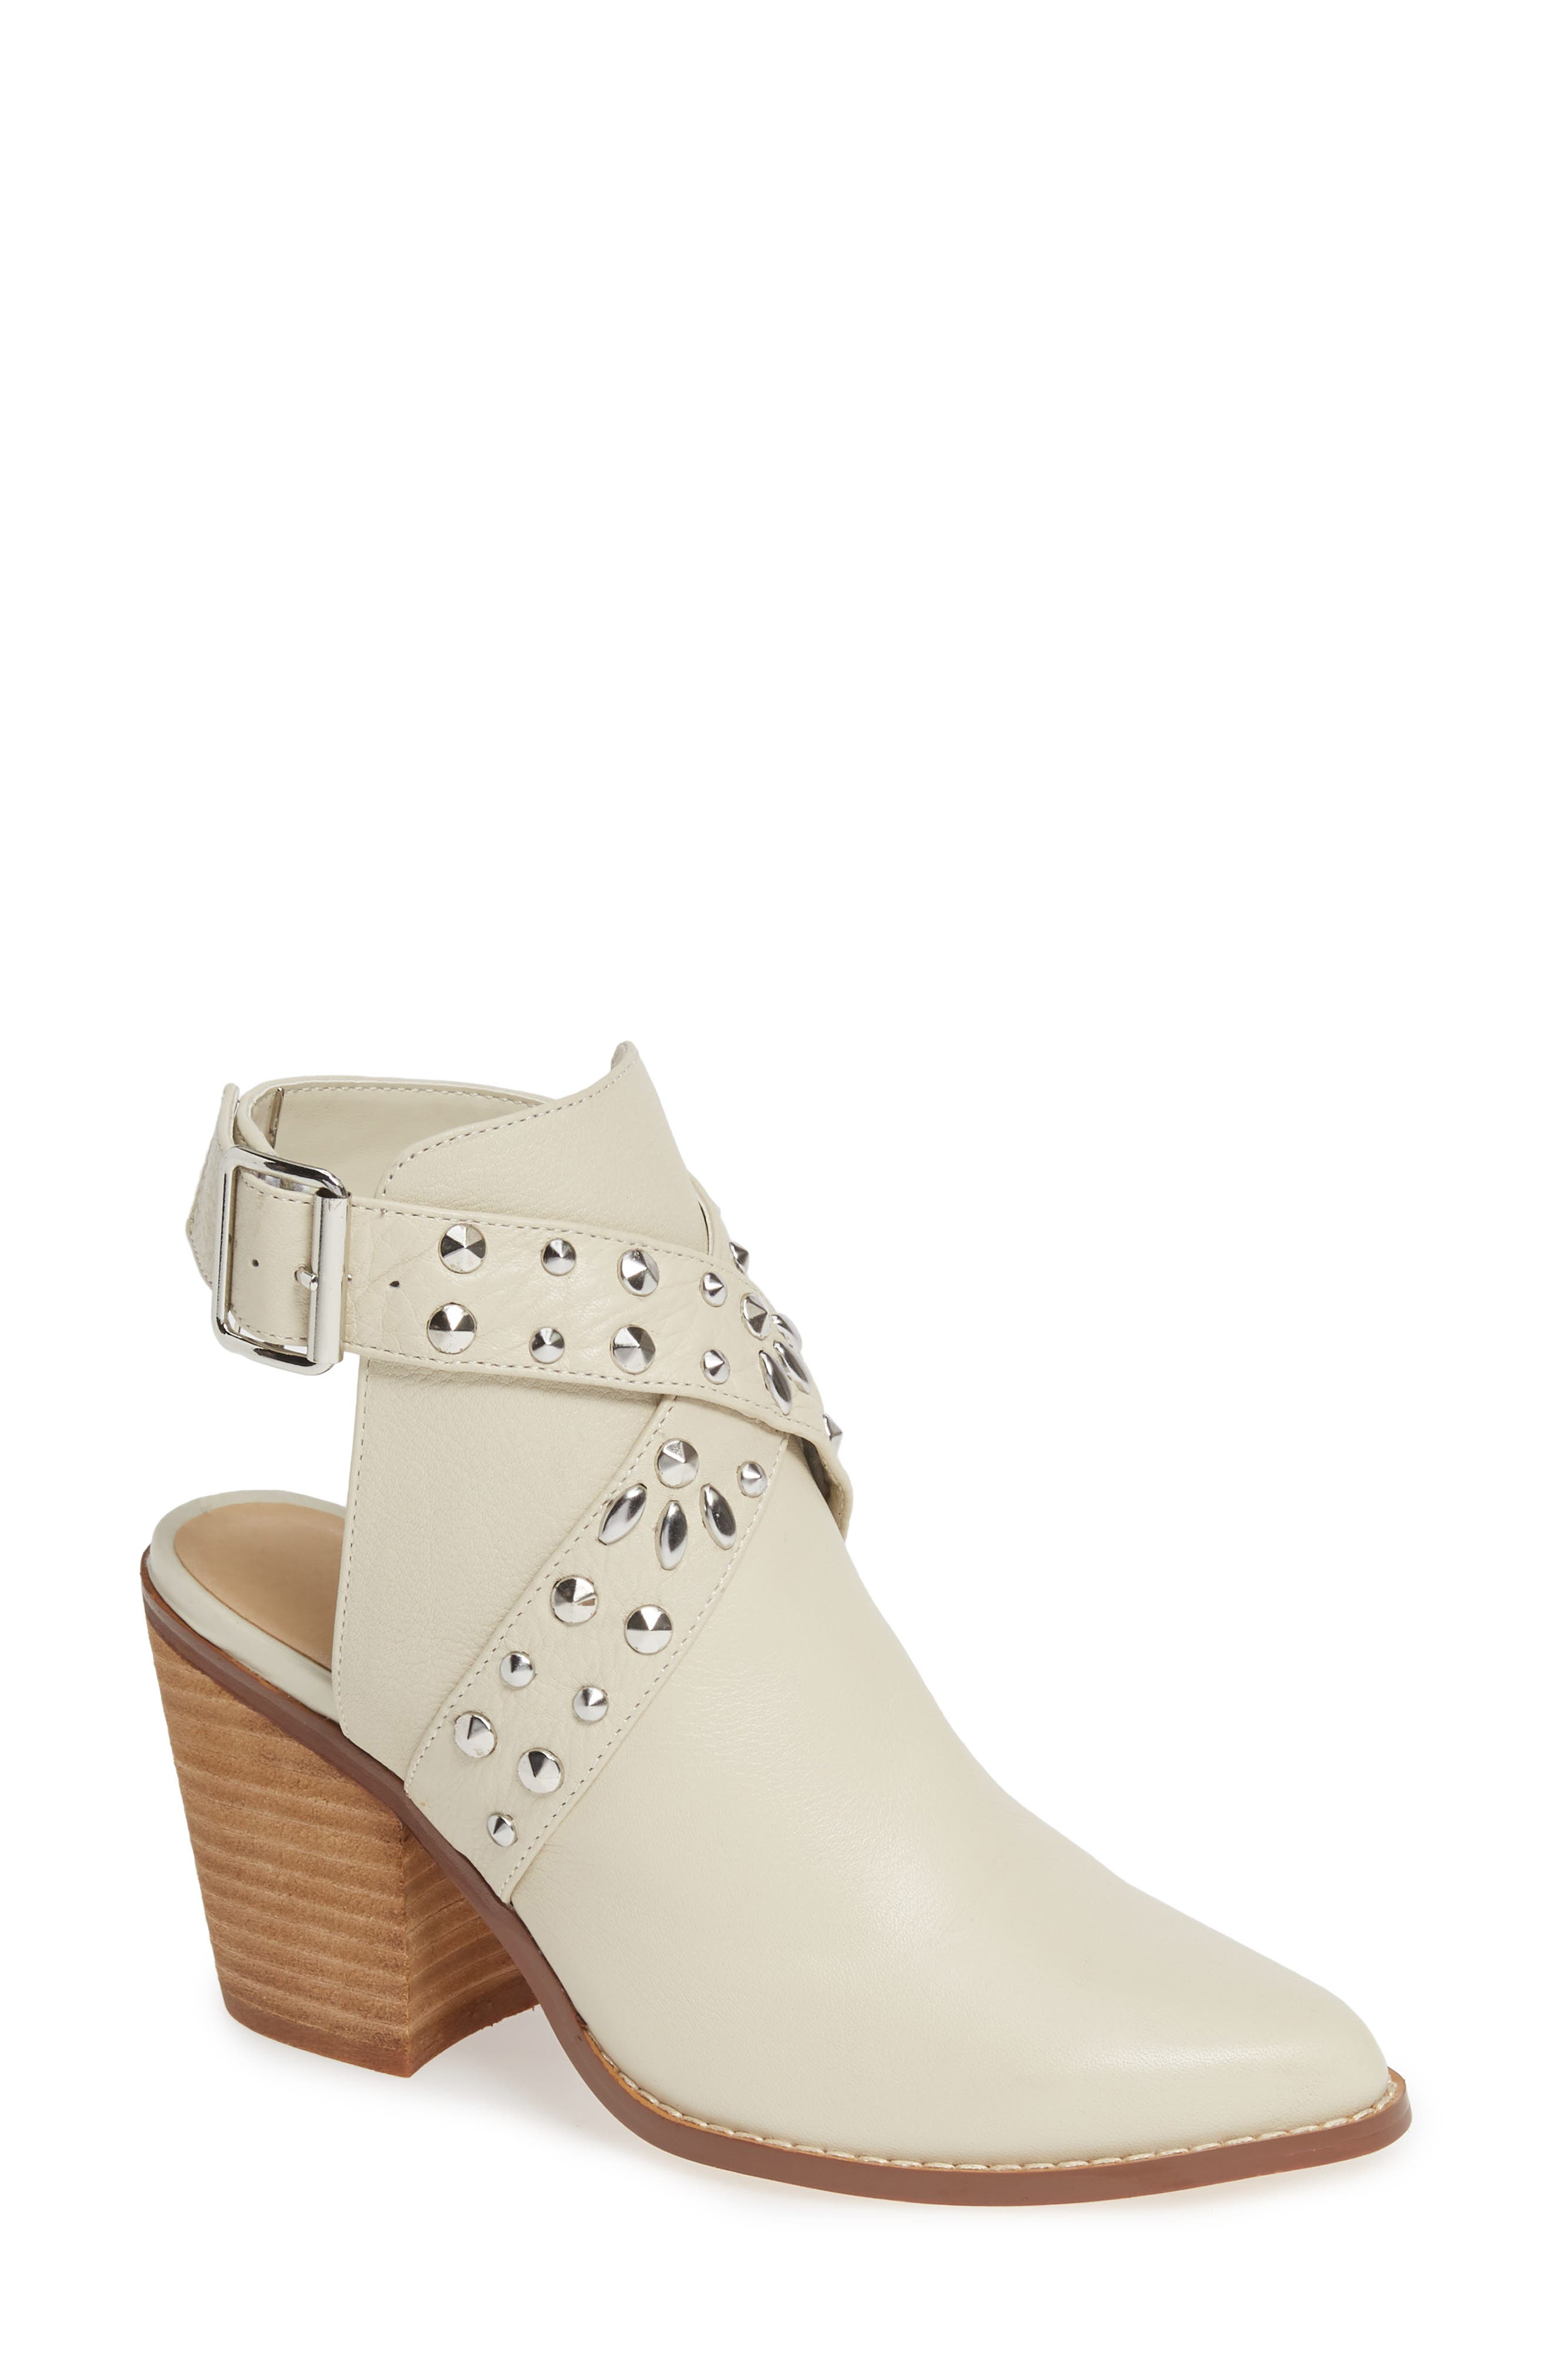 Chinese Laundry Small Town Studded Bootie, White